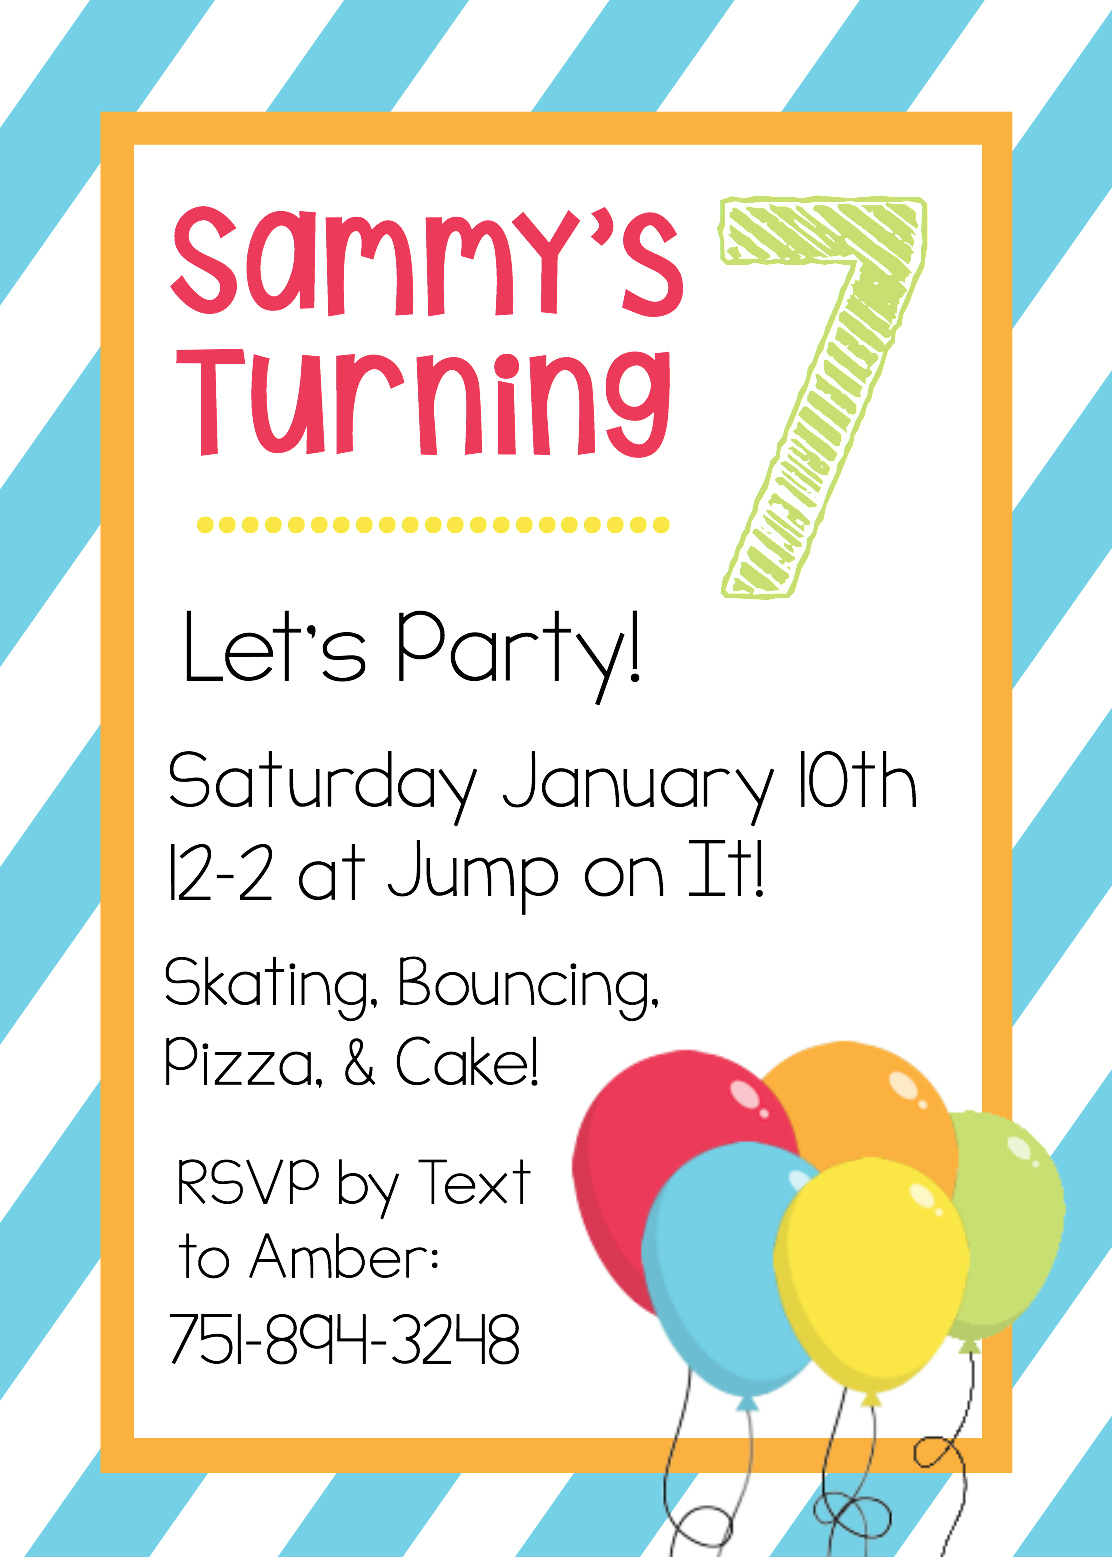 Printable Birthday Invitation Templates - Free printable birthday party invitations templates